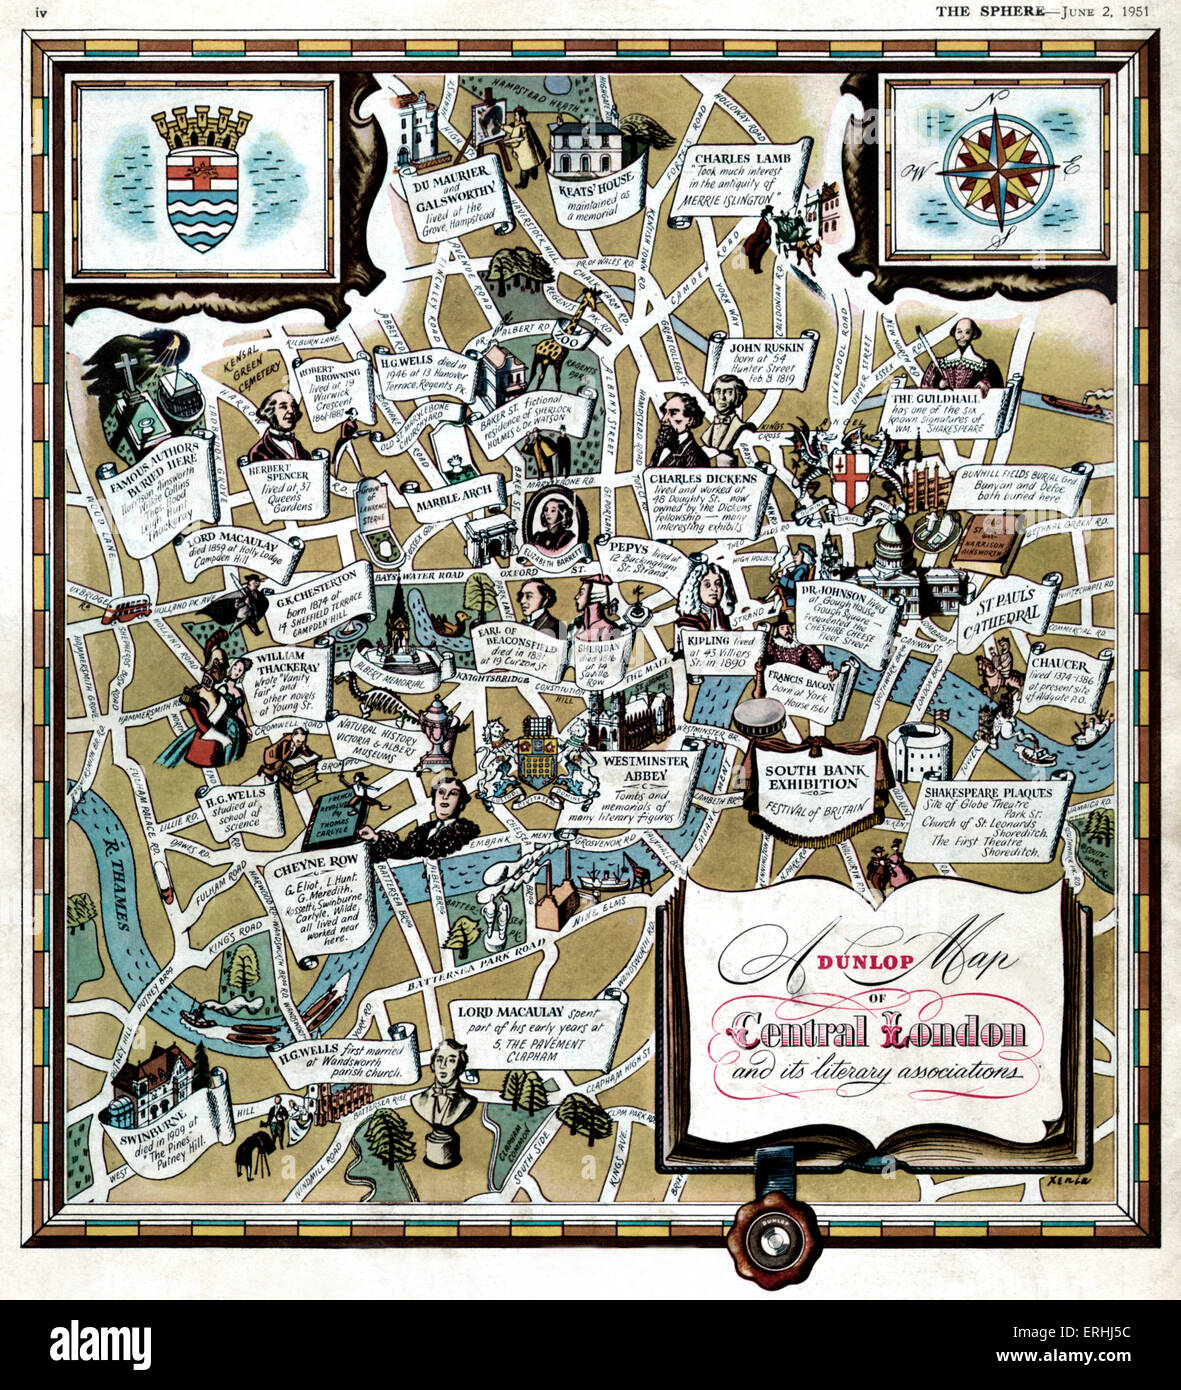 Central London  and its literary associations. Illustrated map  shows where famous writers and authors lived and - Stock Image